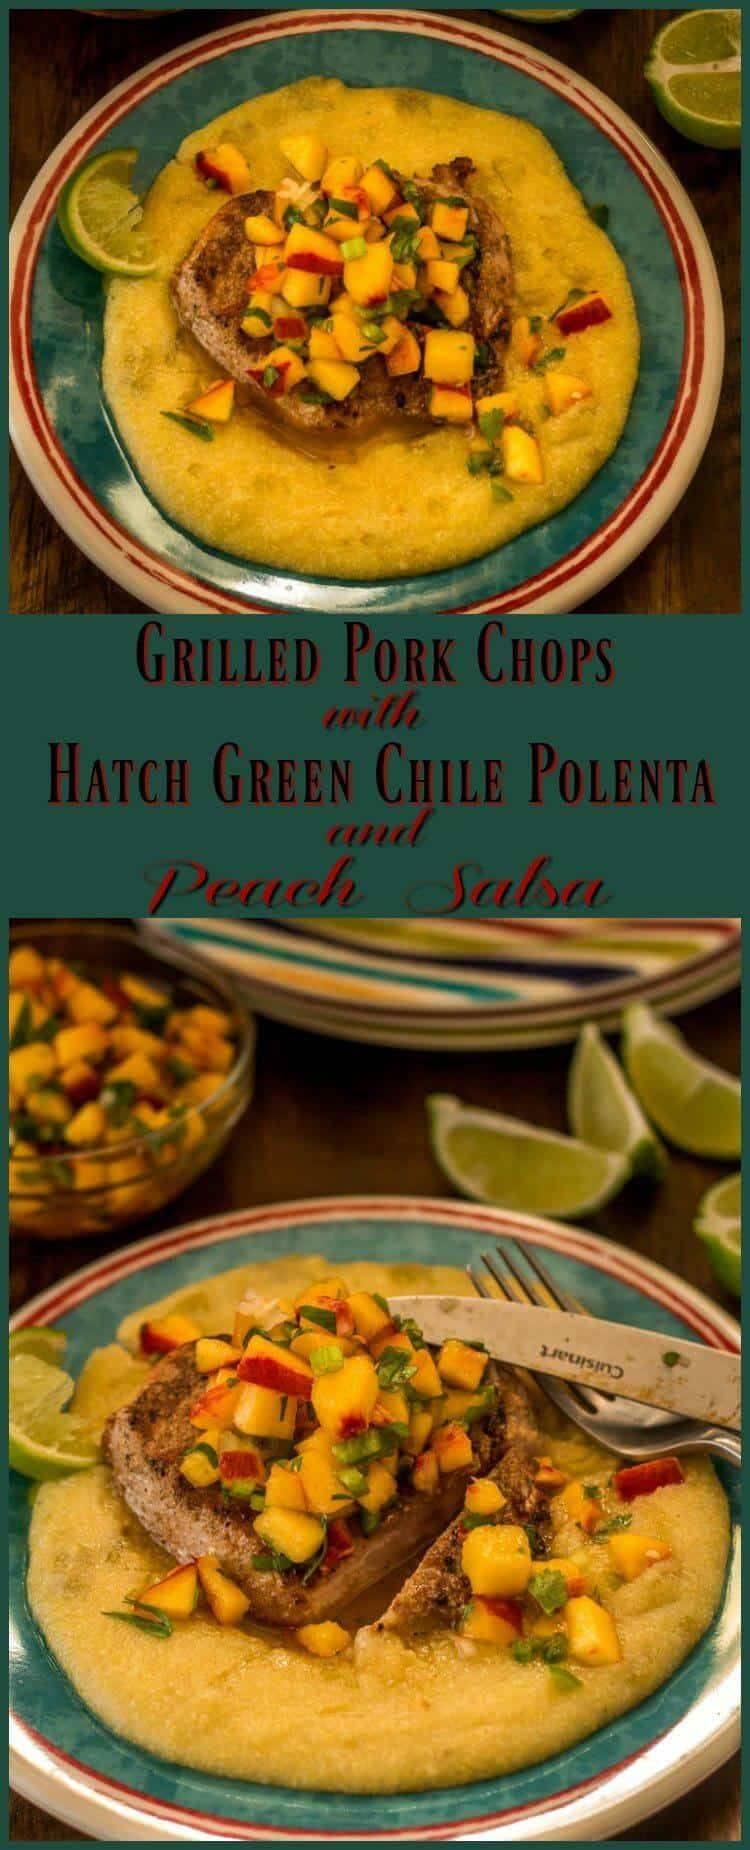 Grilled Pork Chops With Hatch Green Chile Polenta - creamy polenta gets topped with a spice rubbed and grilled pork chop, and topped off with a vibrant peach salsa... Buen provecho! Hatch green chile | peach salsa | grilled pork chops